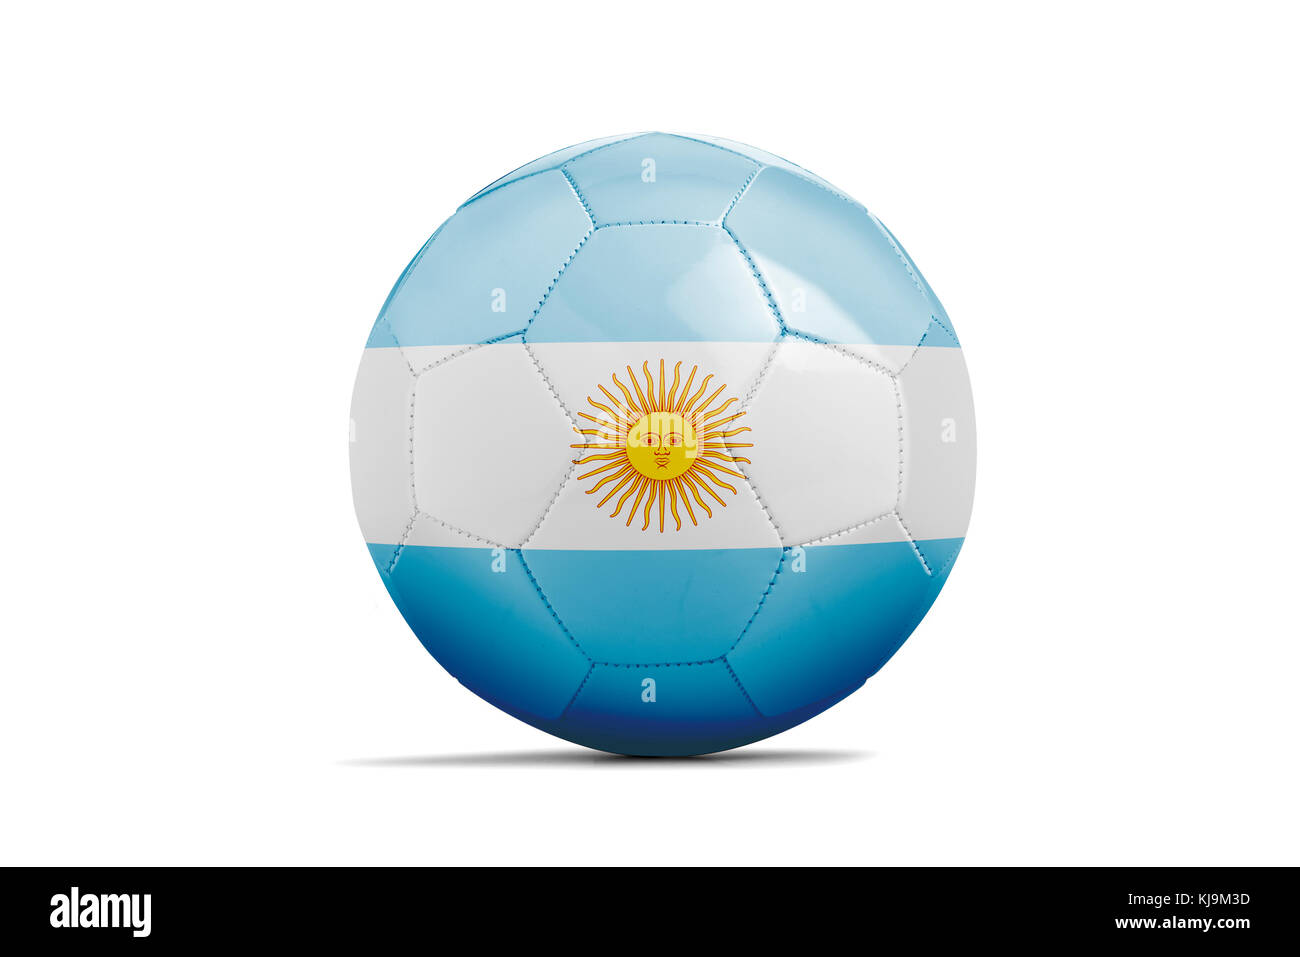 Soccer ball isolated with team flag, Russia 2018. Argentina - Stock Image